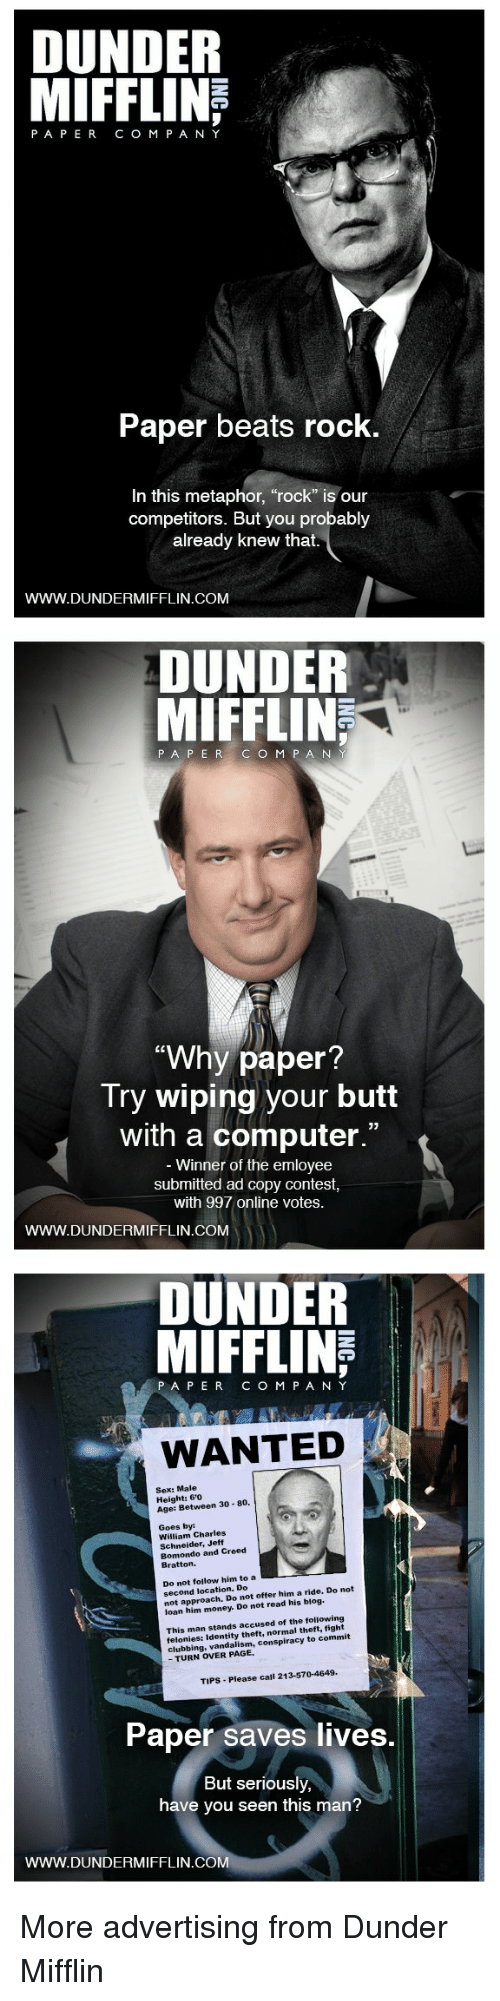 "Clubbing: DUNDER  PAPERCO M P A NY  Paper beats rock  In this metaphor, ""rock"" is our  competitors. But you probably  already knew that.  WWW.DUNDERMIFFLIN.COM   DUNDER  MIFFLIN  187  PA P ERC O M P A N  ""Why paper  Try wiping your butt  with a computer.""  Winner of the emloyee  submitted ad copy contest  with 997 online votes.  WWW.DUNDERMIFFLIN.COM   DUNDER  MIFFLINE  PAPERCOM PANY  WANTED  Sex: Male  Height: 60  Age: Between 30 80.  Goes by  William Charles  Schneider, Jeff  Bomondo and Creed  Bratton.  Do not follow him to a EEE  second location. Do  not approach. Do not offer him a ride. Do not  loan him money. Do not read his blog.  This man stands accused of the following  felonies: Identity theft, normal theft, fight  clubbing, vandalism, conspiracy to commit  - TURN OVER PAGE.  TIPS-Please call 213-570-4649  Paper saves lives.  But seriously,  have you seen this man?  WWW.DUNDERMIFFLIN.COM More advertising from Dunder Mifflin"